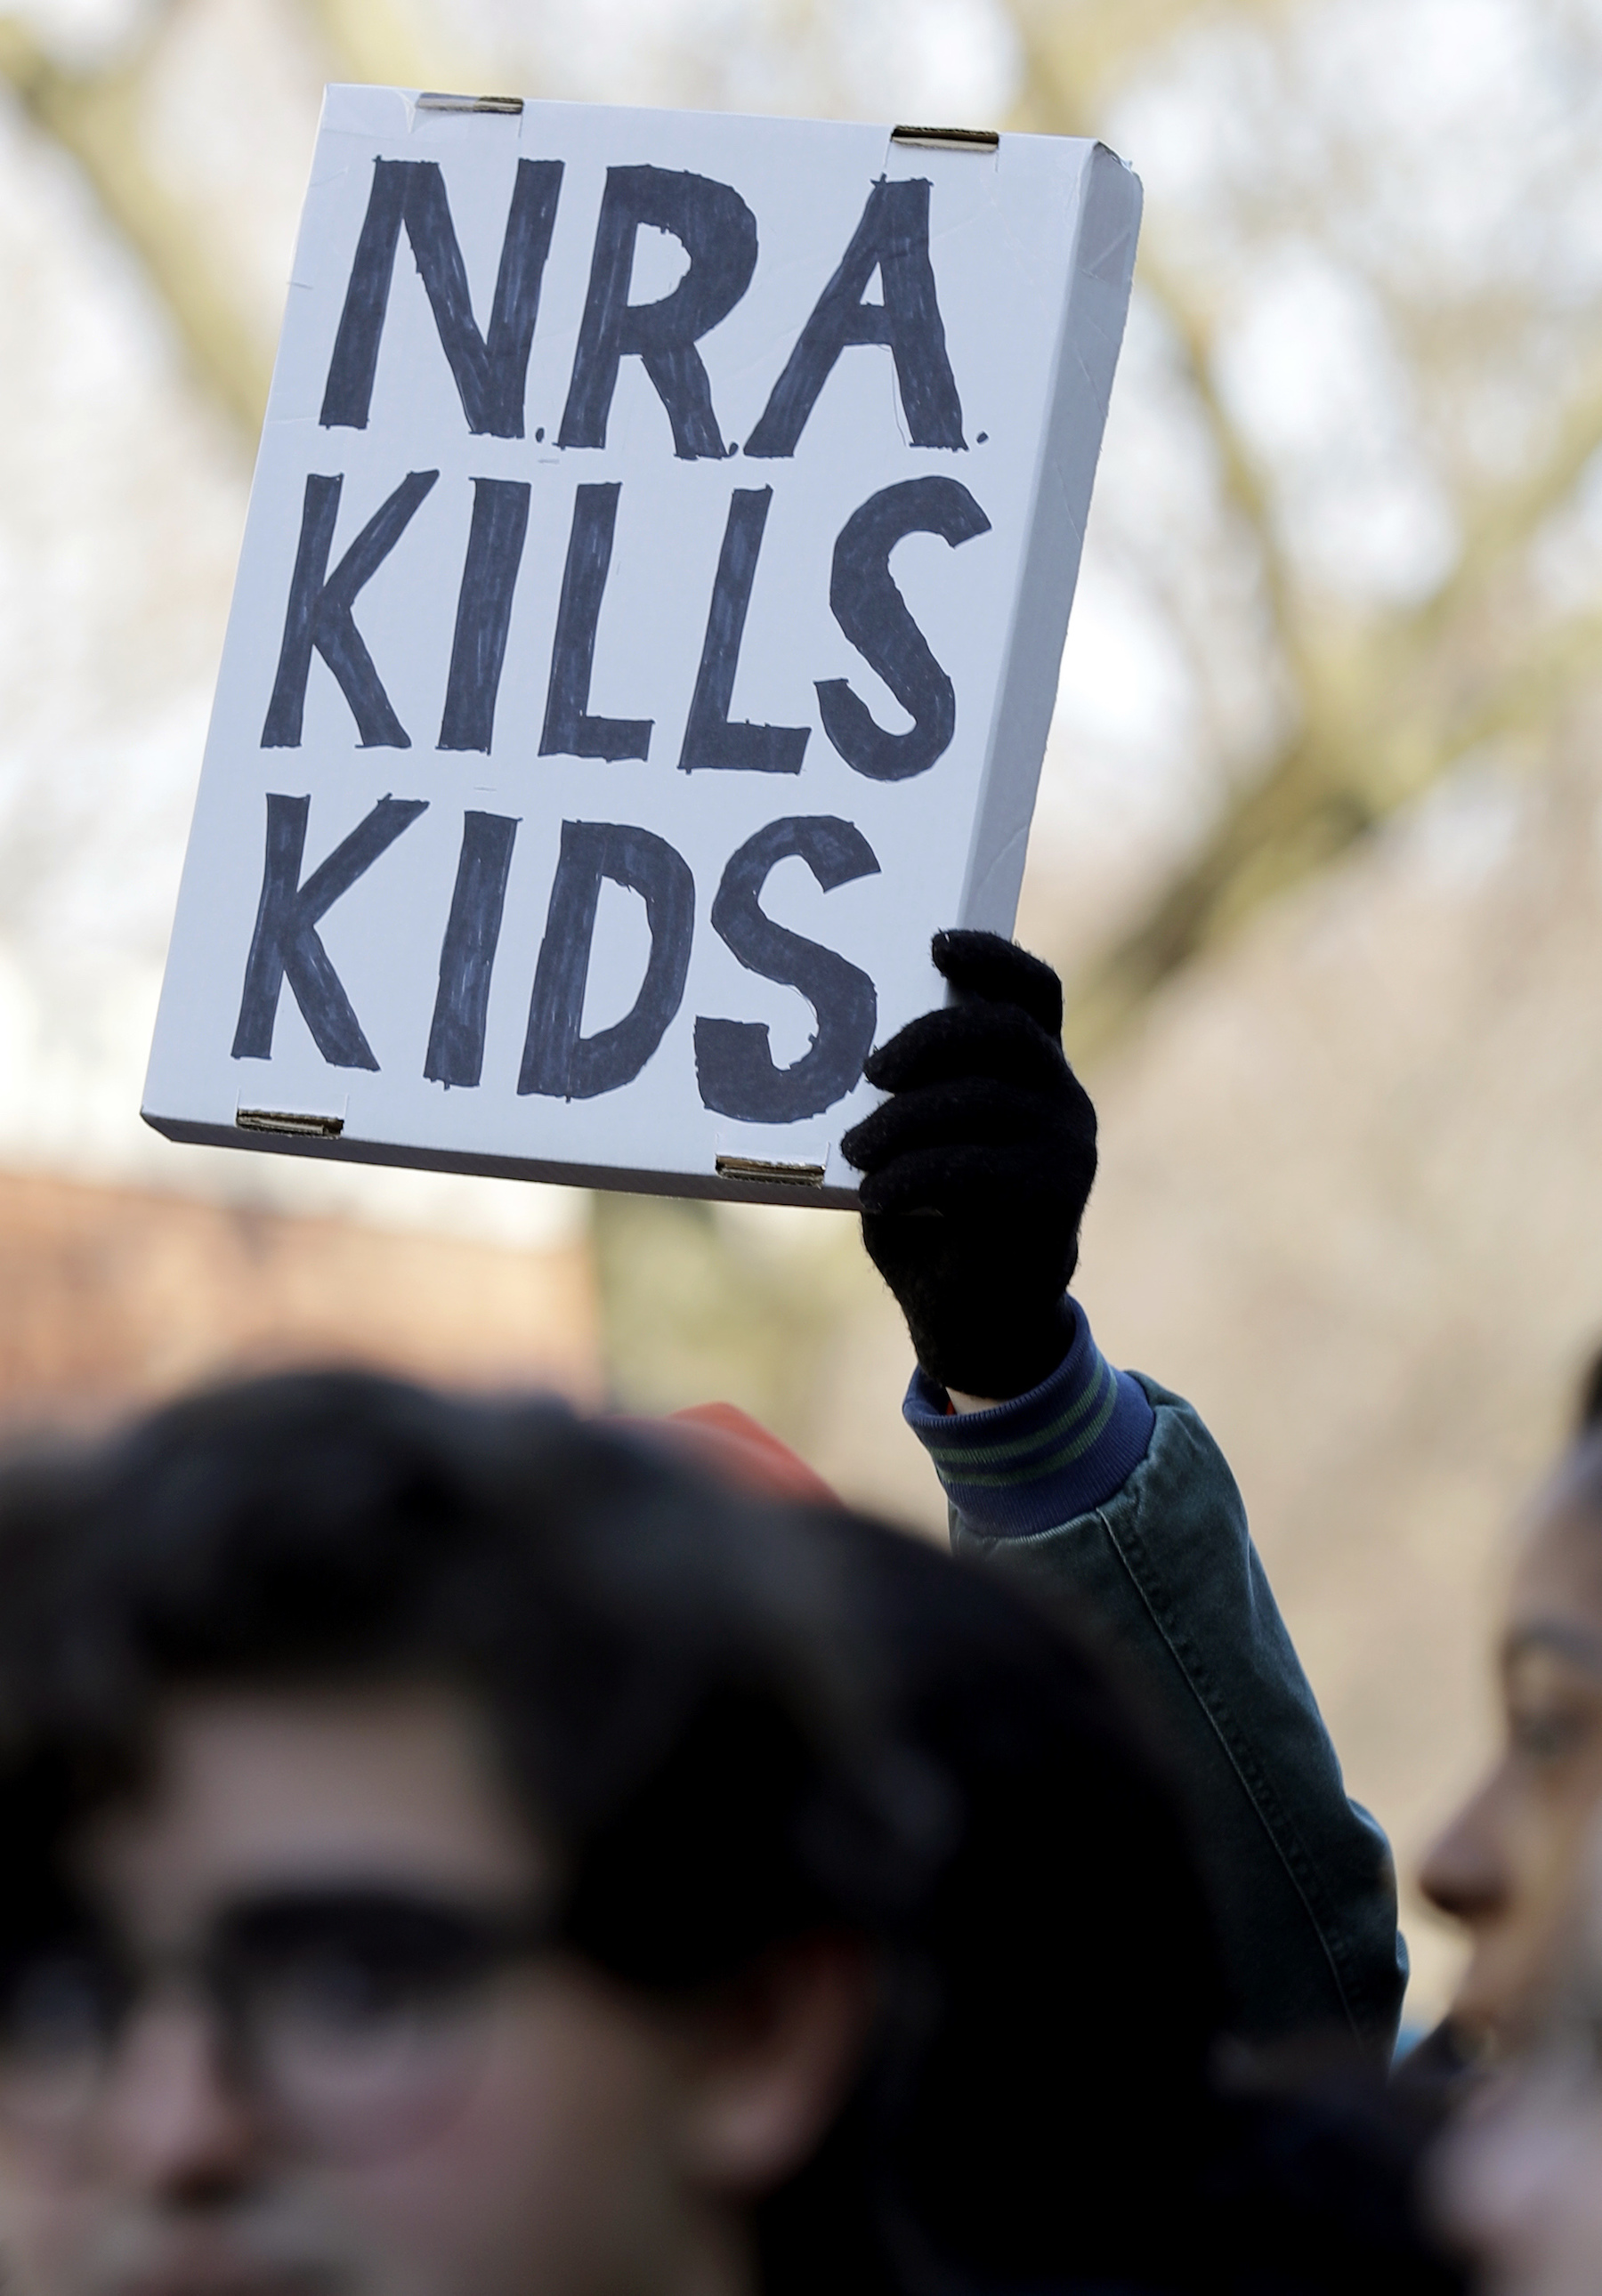 <div class='meta'><div class='origin-logo' data-origin='AP'></div><span class='caption-text' data-credit='AP Photo/Nam Y. Huh'>Students participate in a walkout to protest gun violence at Lincoln Park High School in Chicago.</span></div>